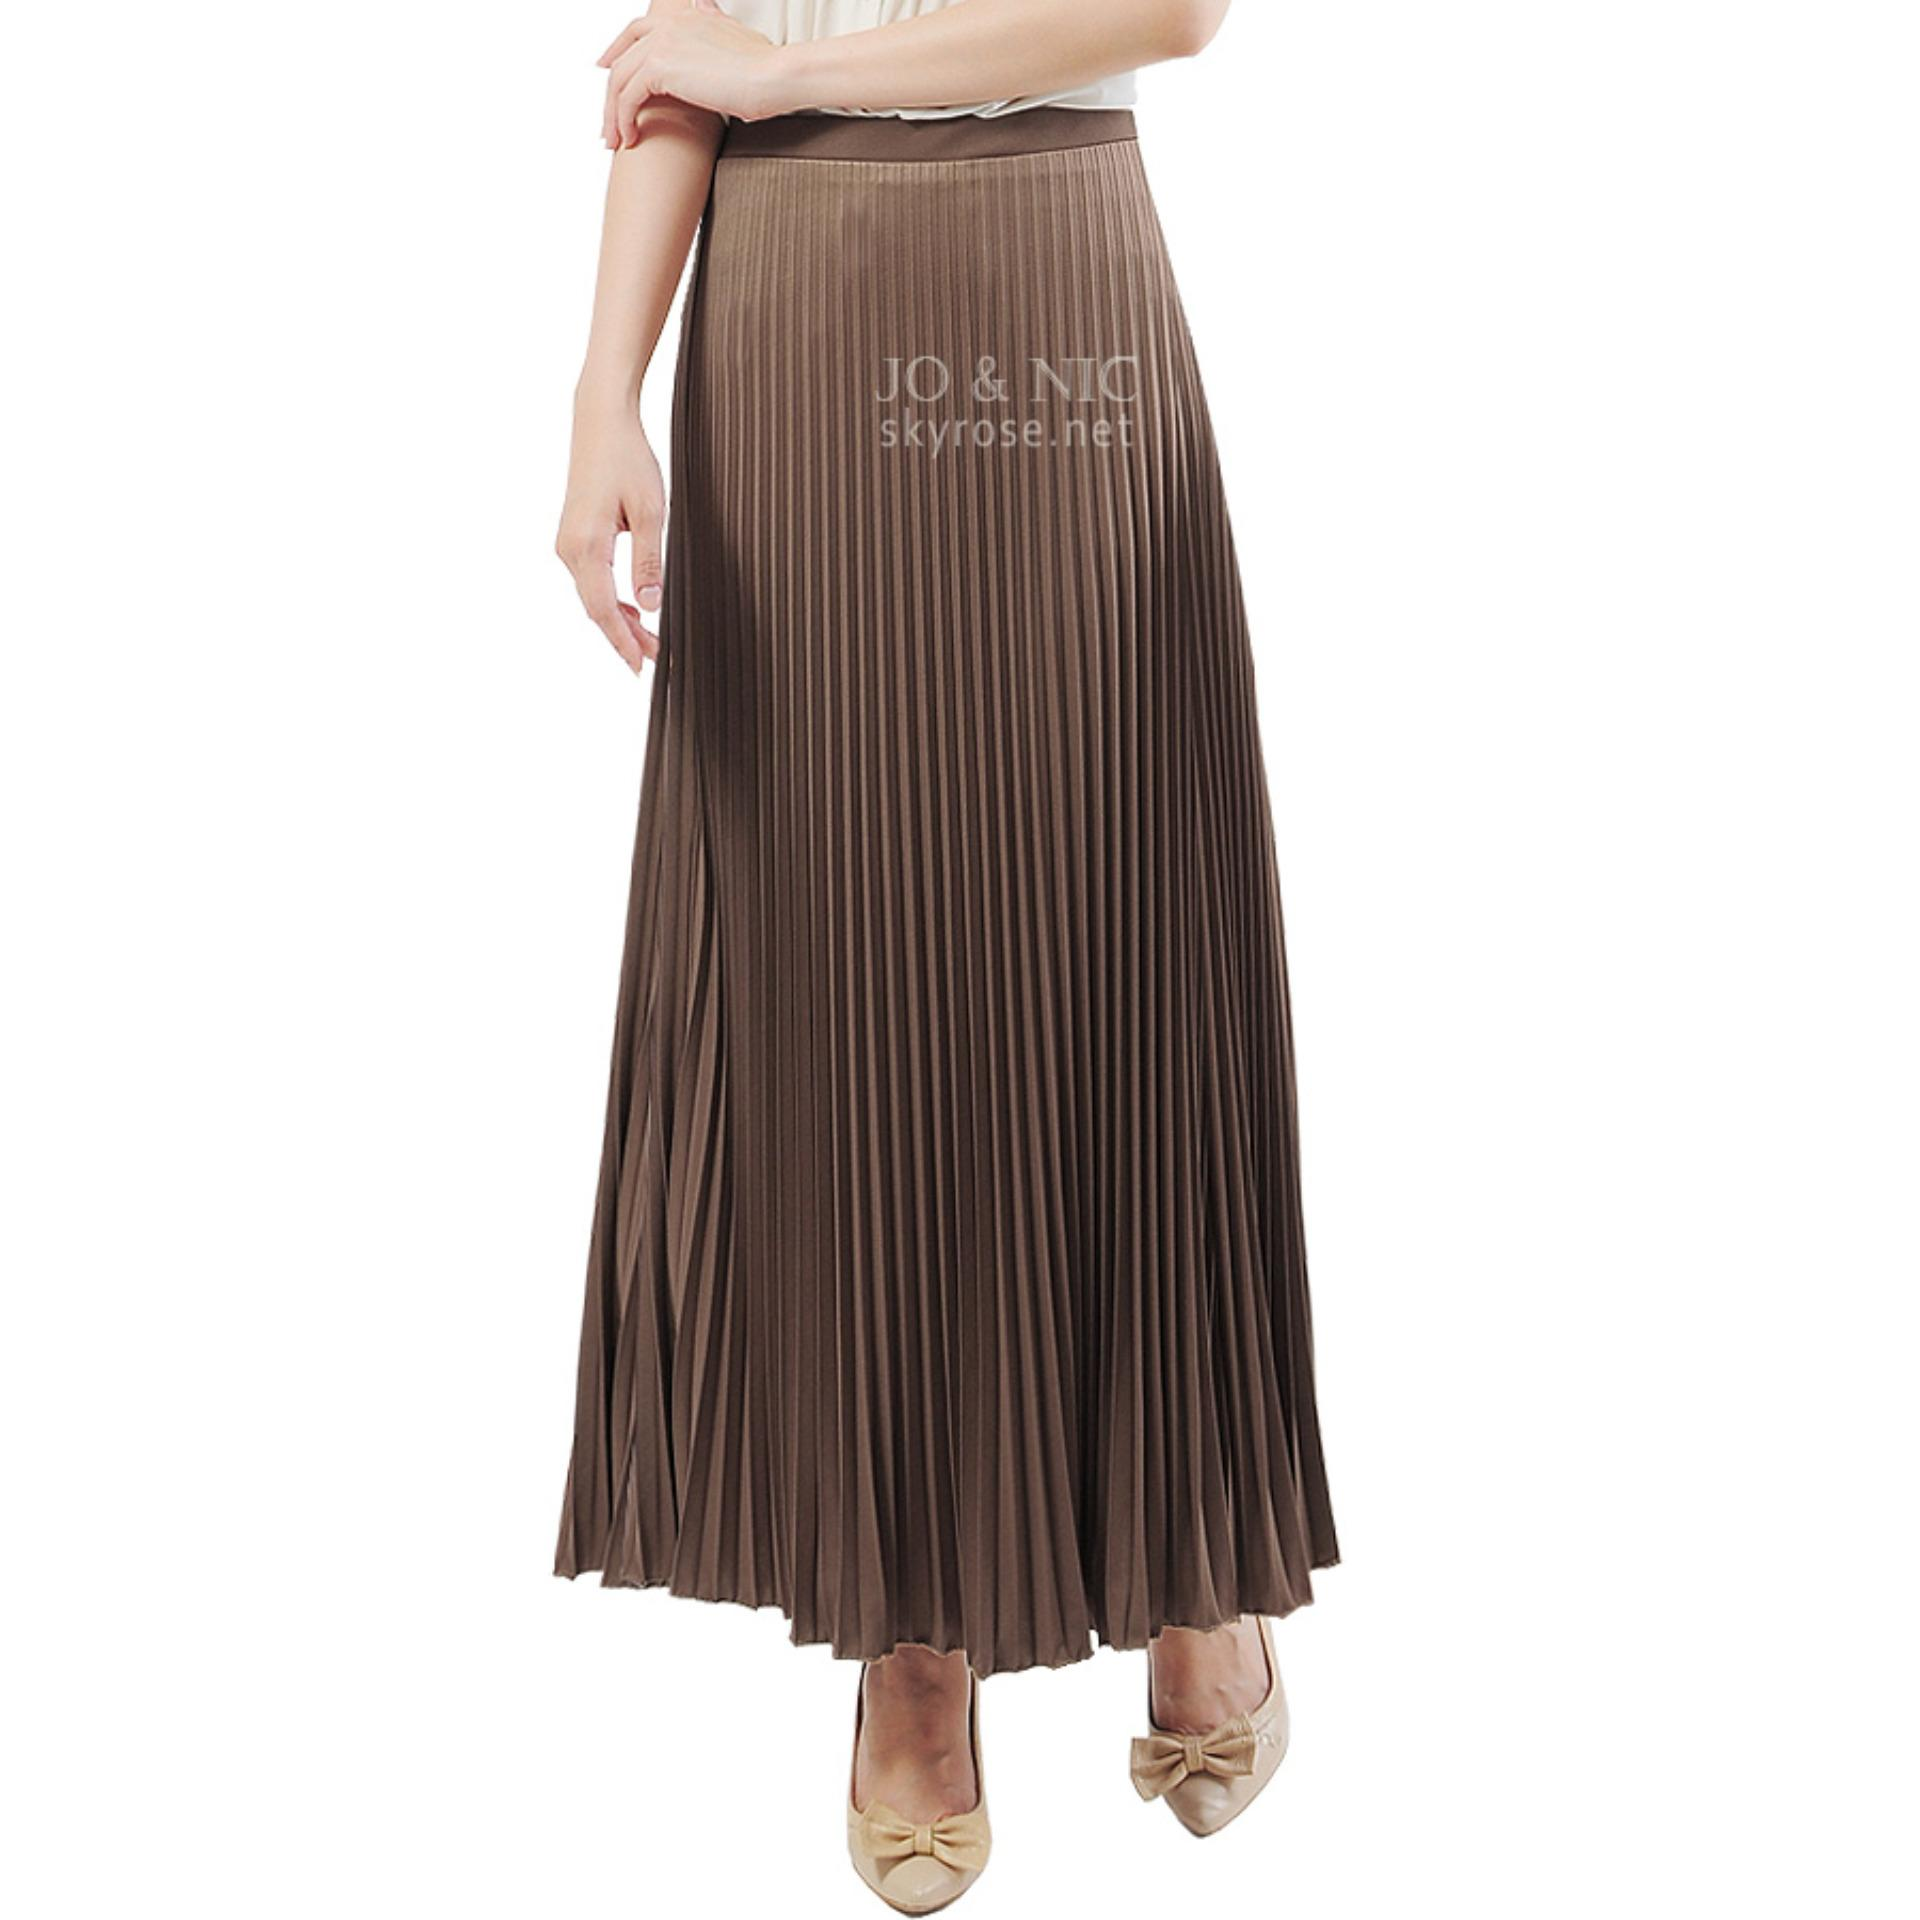 Jo Nic A Line Maxi Skirt Rok Hijab Fit To Xl Milo Daftar Harga Wrapped Long Btnl70254 Pleated Skirts Panjang Lipit